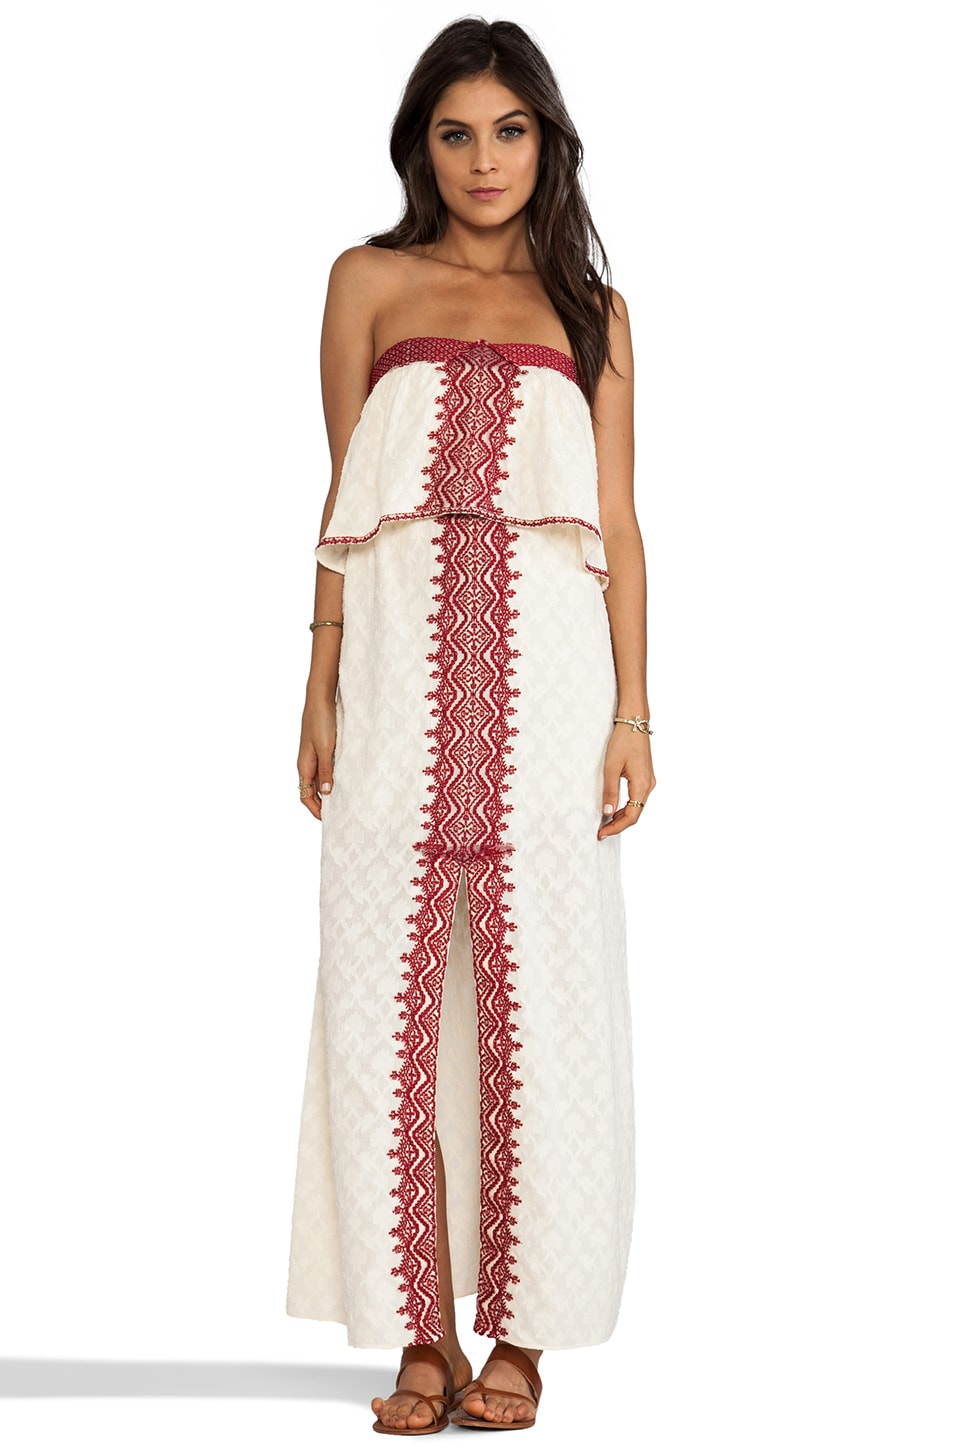 Free People Marrakesh Strapless Embroidered Dress in Eggshell